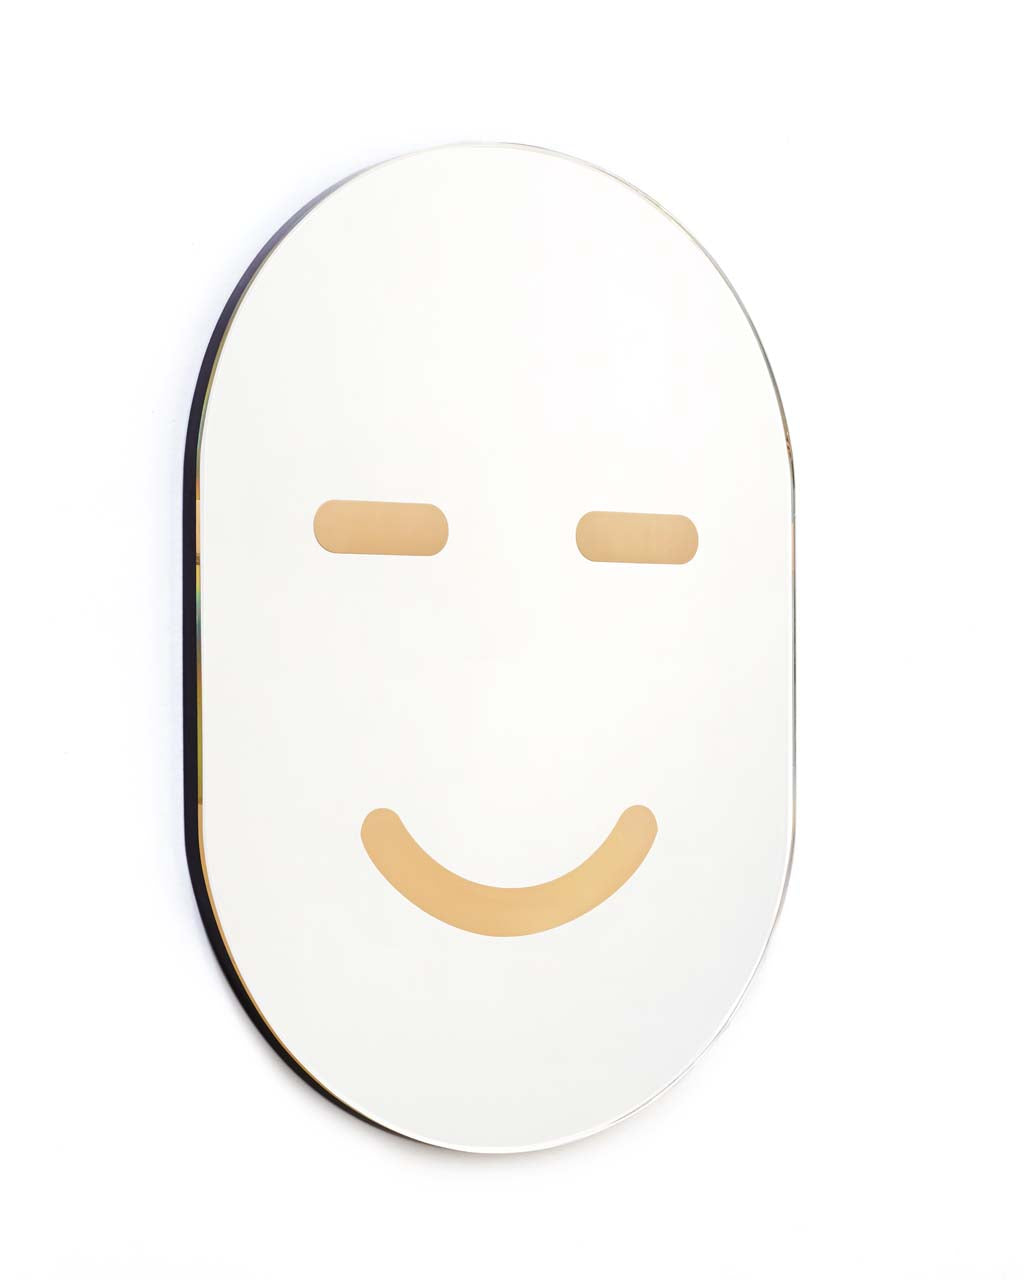 This mirror by Areaware has a yellow happy face painted on the front.